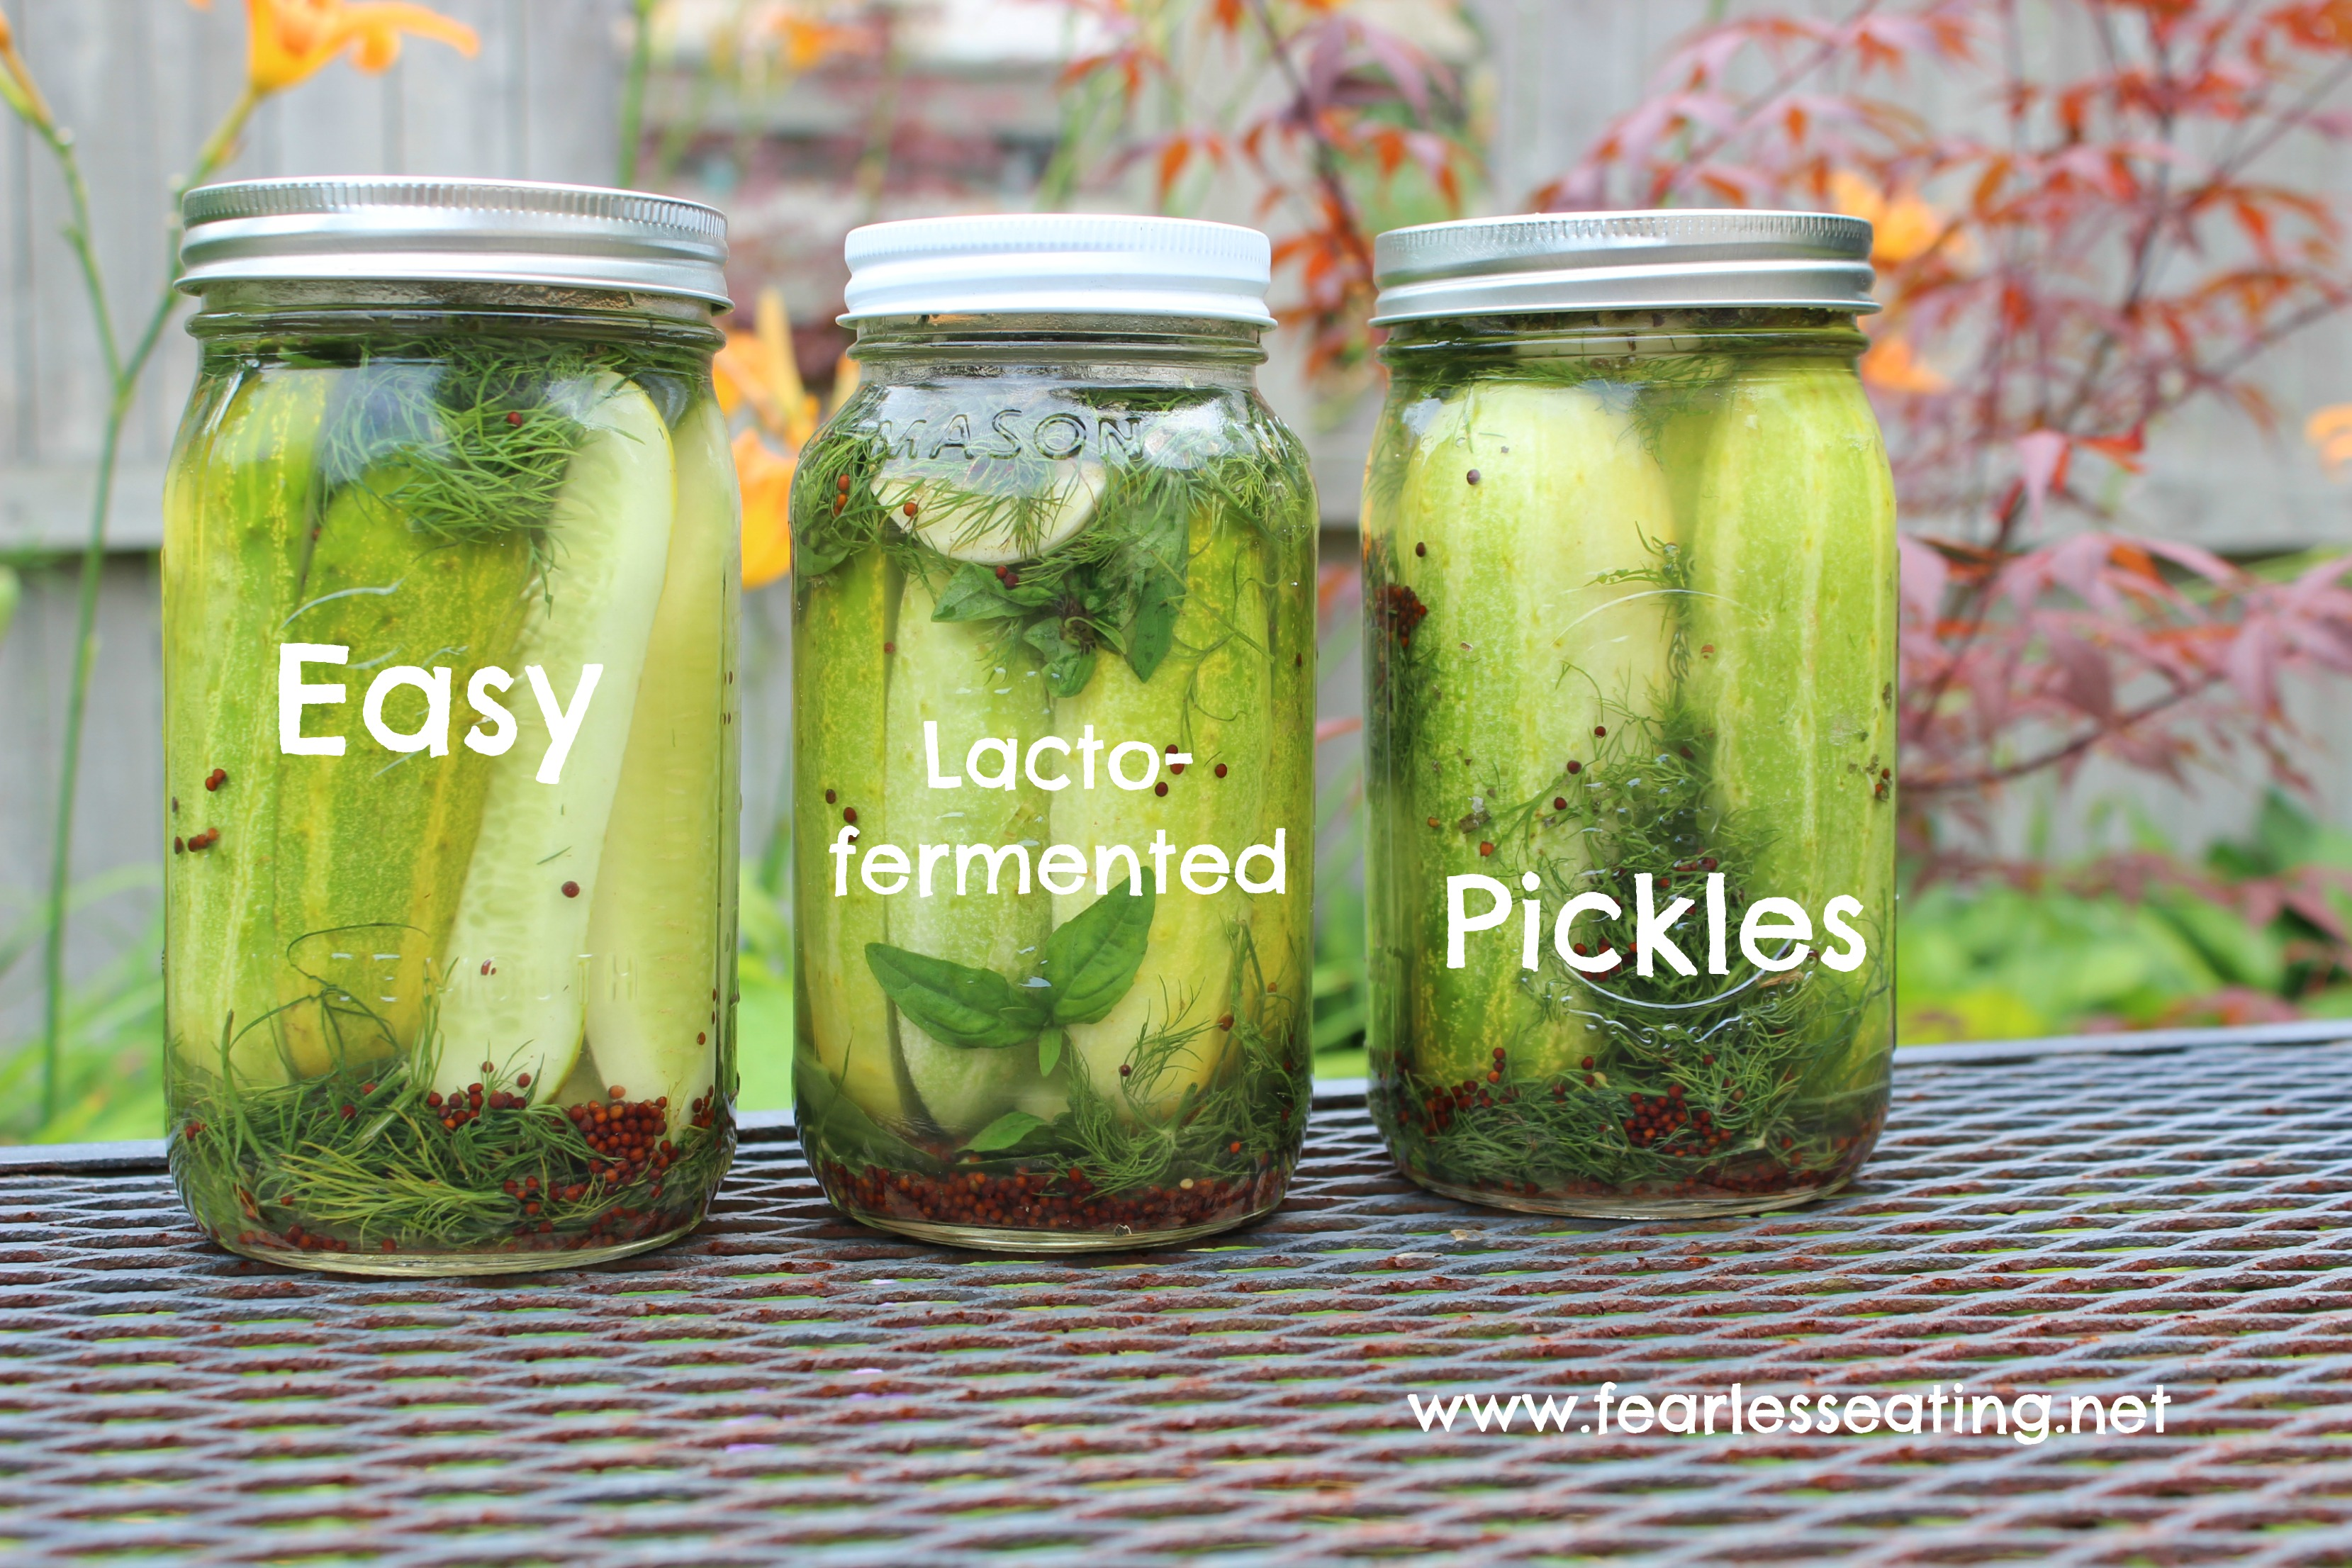 Lacto-fermented Pickles